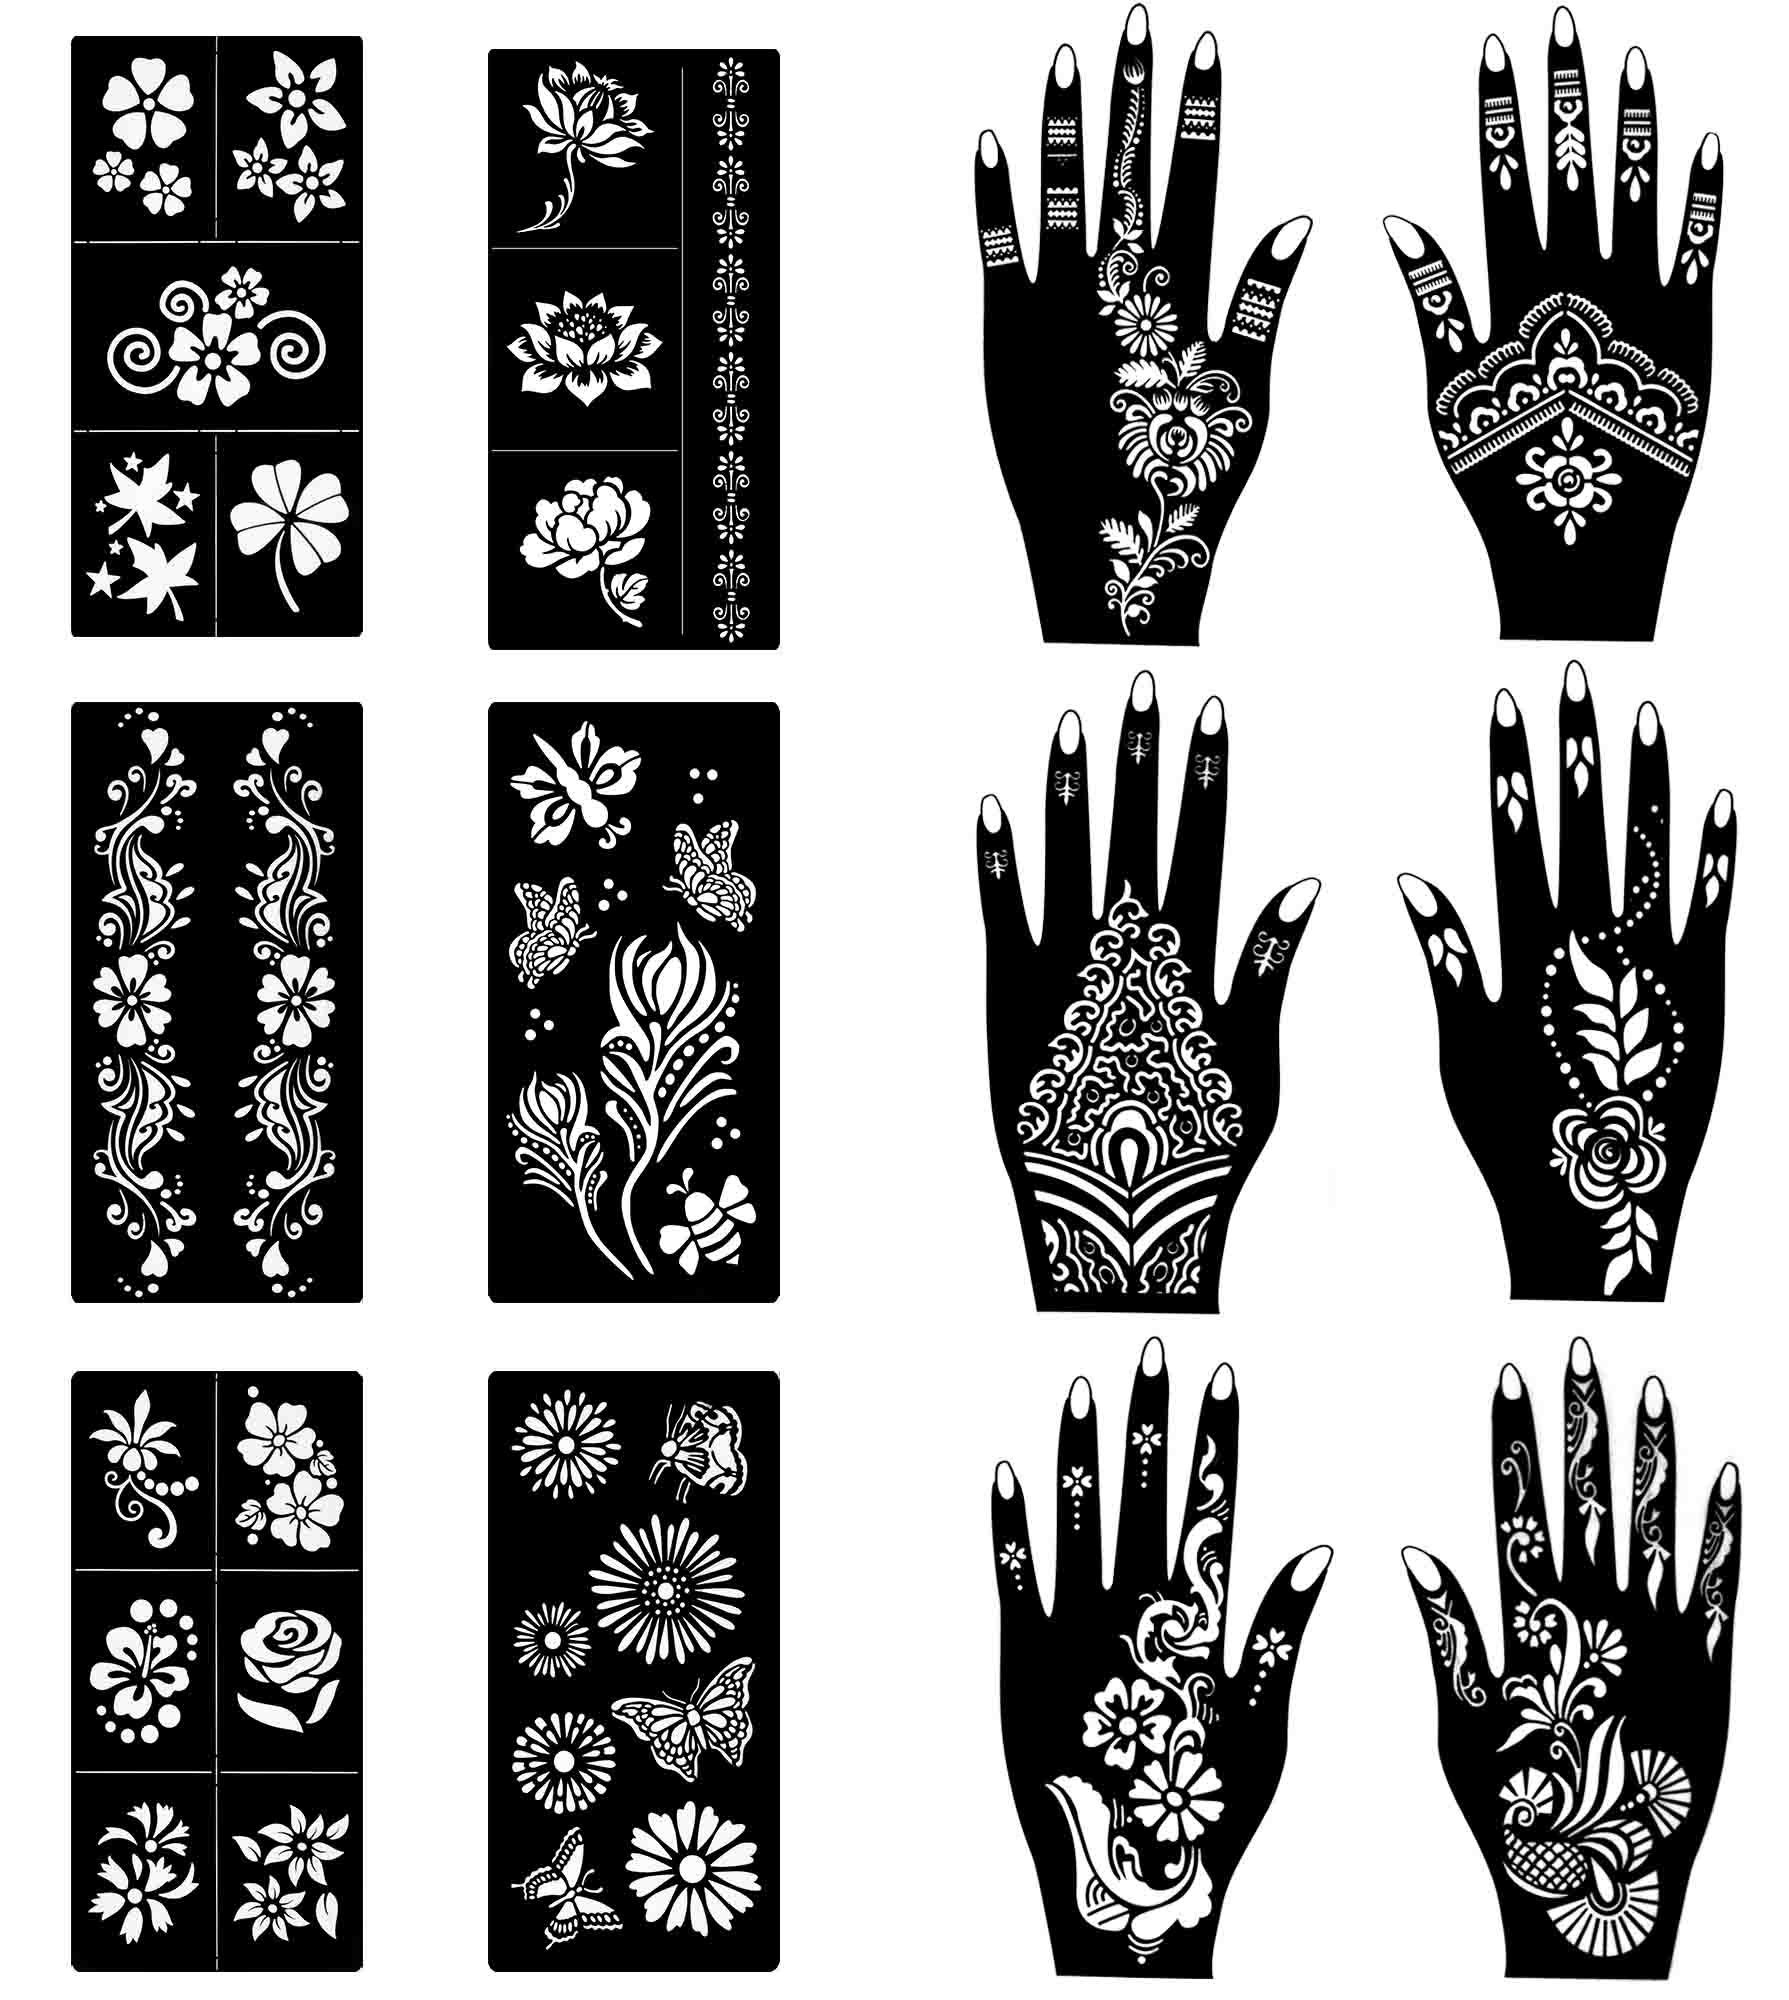 COKOHAPPY Stencils for Henna Tattoos (12 Sheets) Self-Adhesive Beautiful Body Art Temporary Tattoo Templates, Henna, Flower, Butterfly Designs